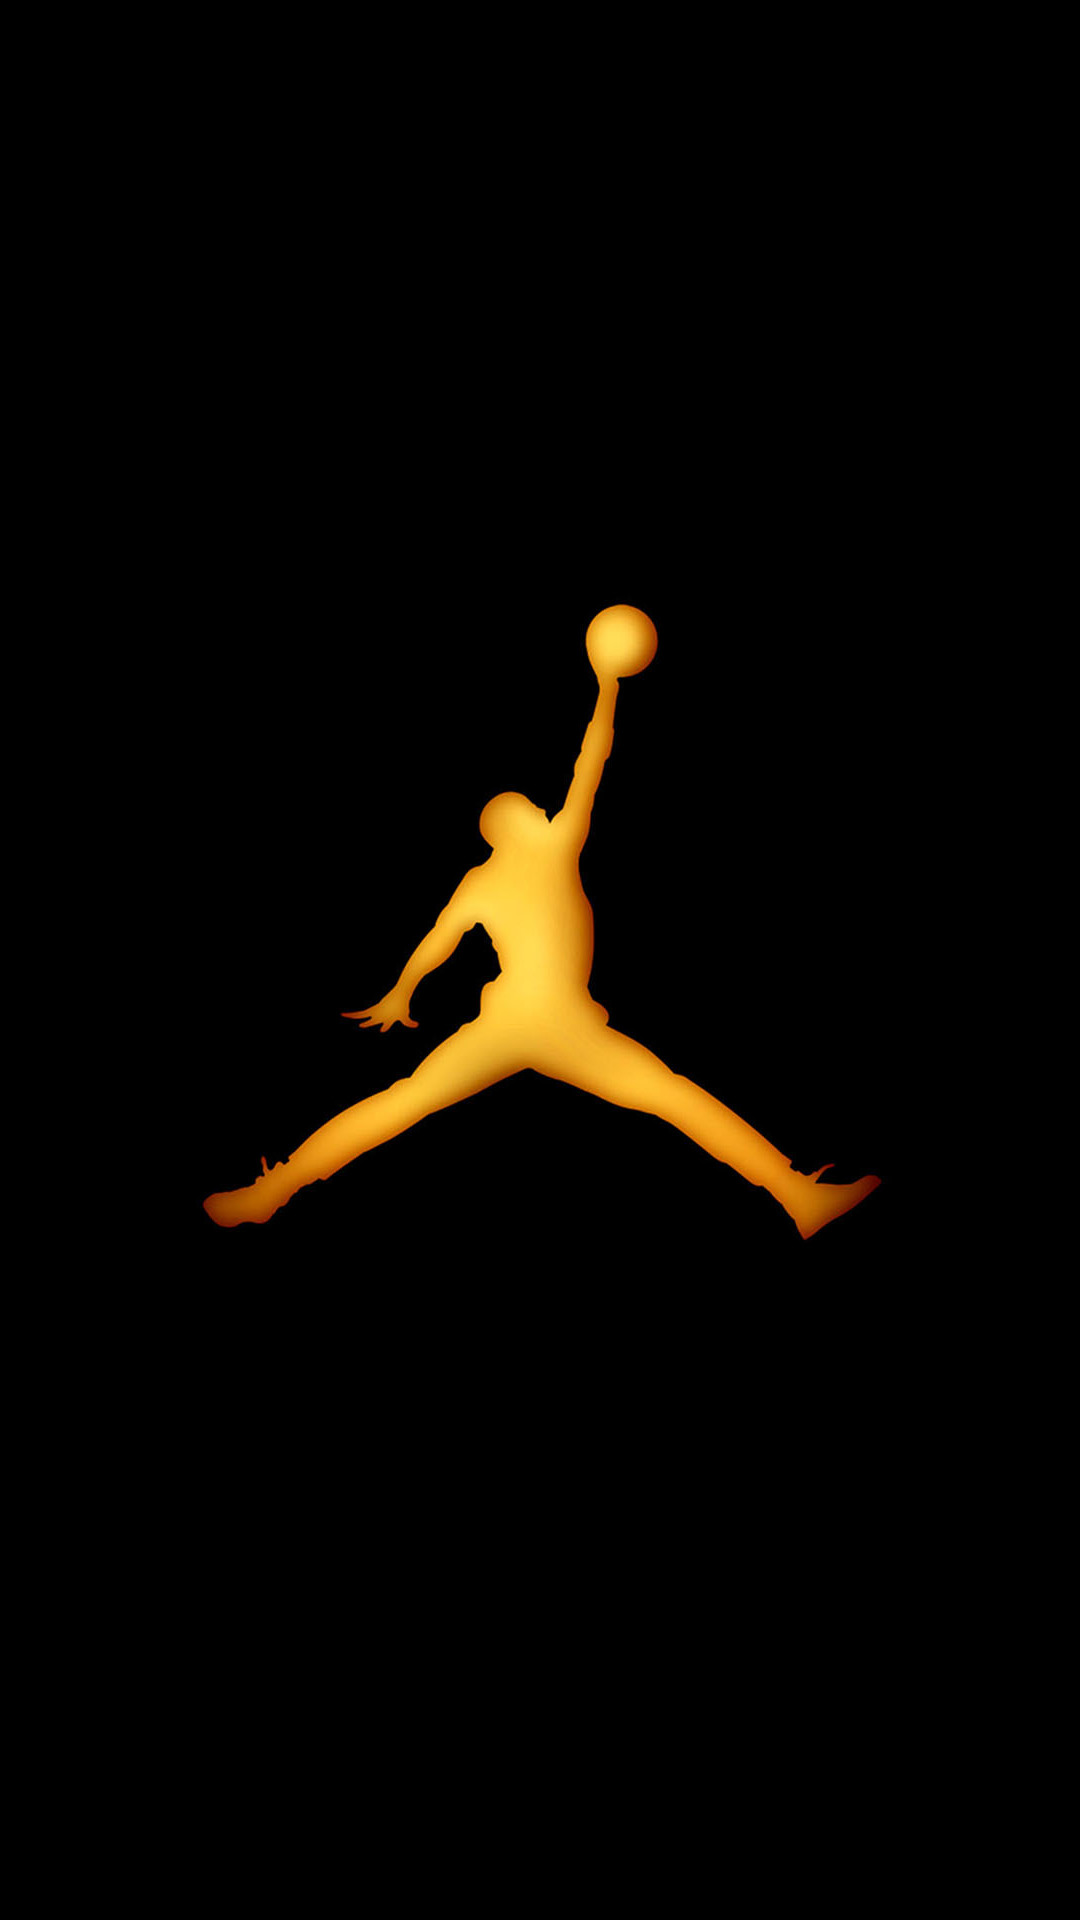 iPhone Wallpaper Jordan Brands